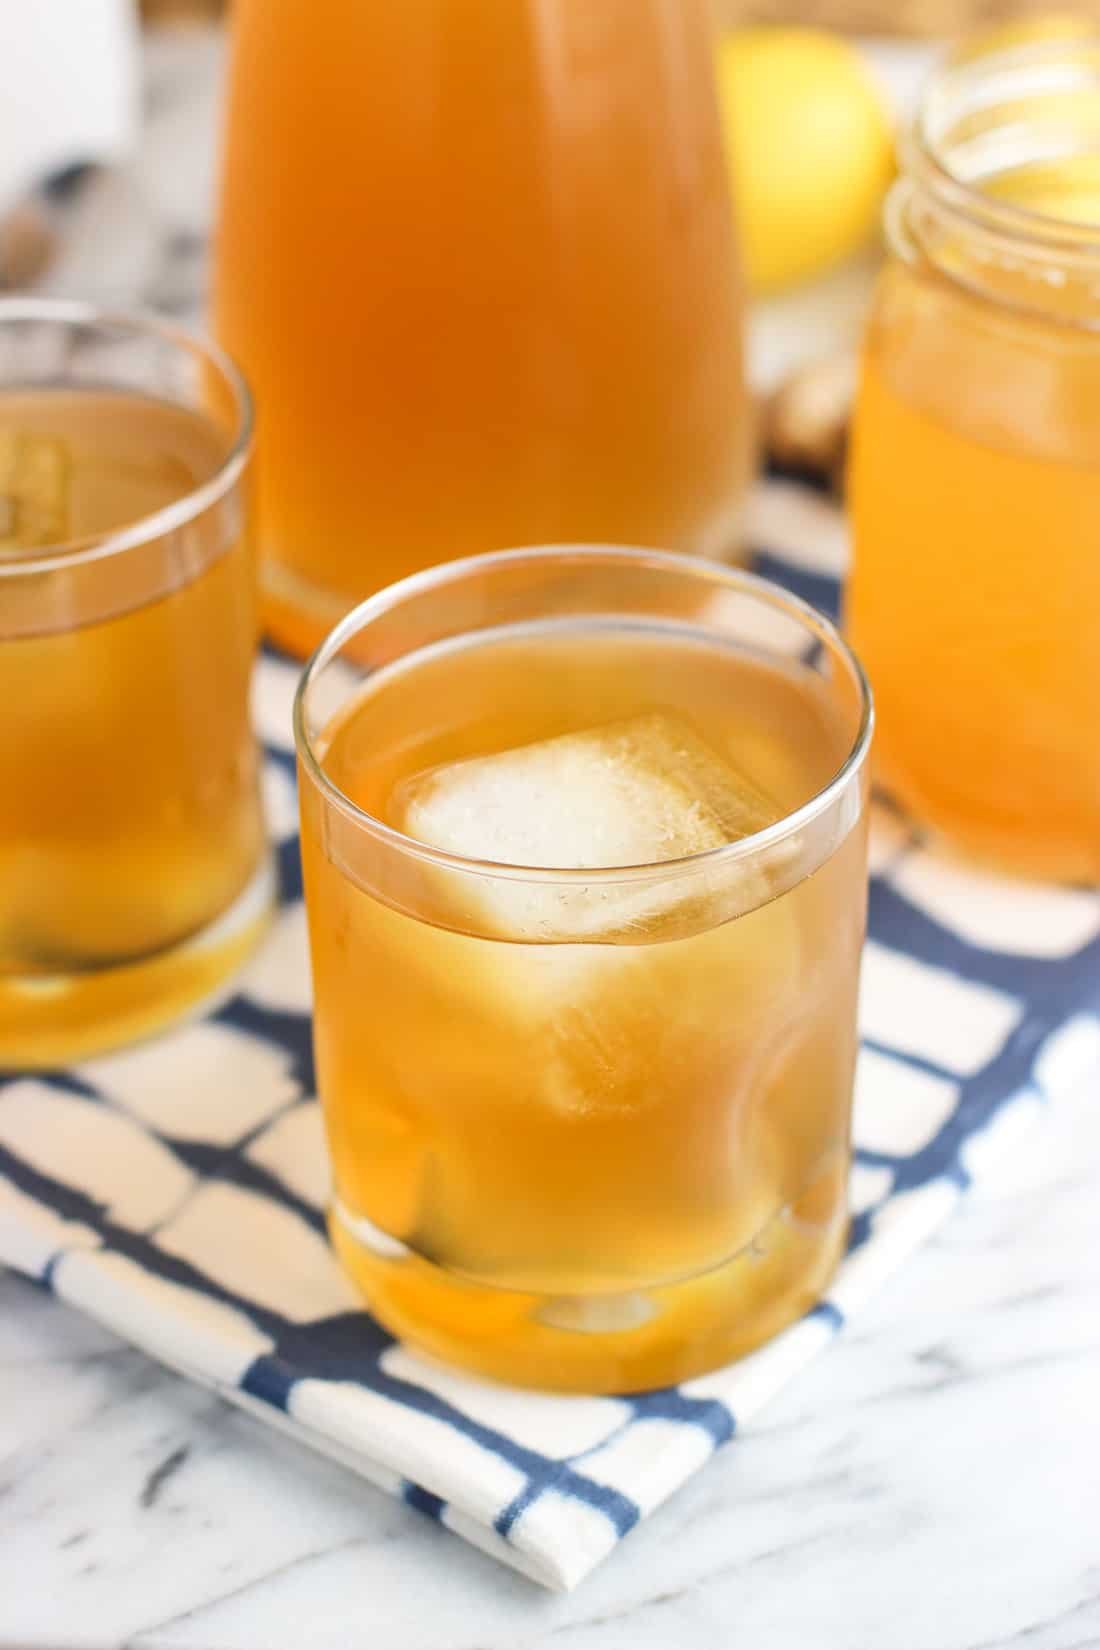 Lemon ginger iced green tea is a refreshing twist on a favorite summer drink. An easy lemon ginger simple syrup uses honey to flavor and sweeten multiple batches to your liking.